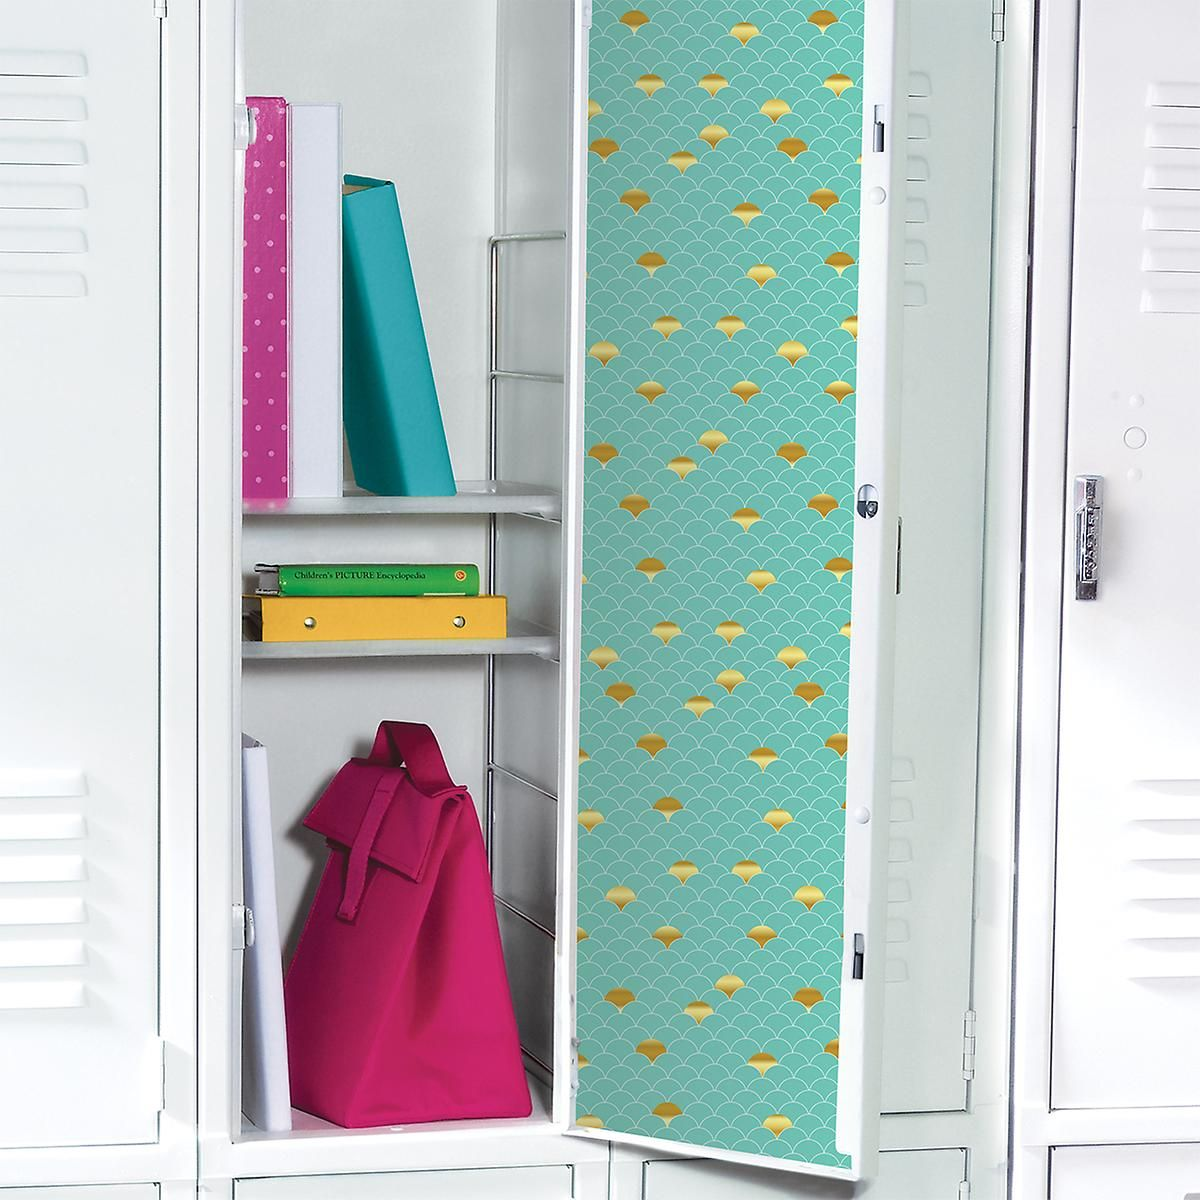 Our Mermaid Locker Wallpaper instantly gives your locker